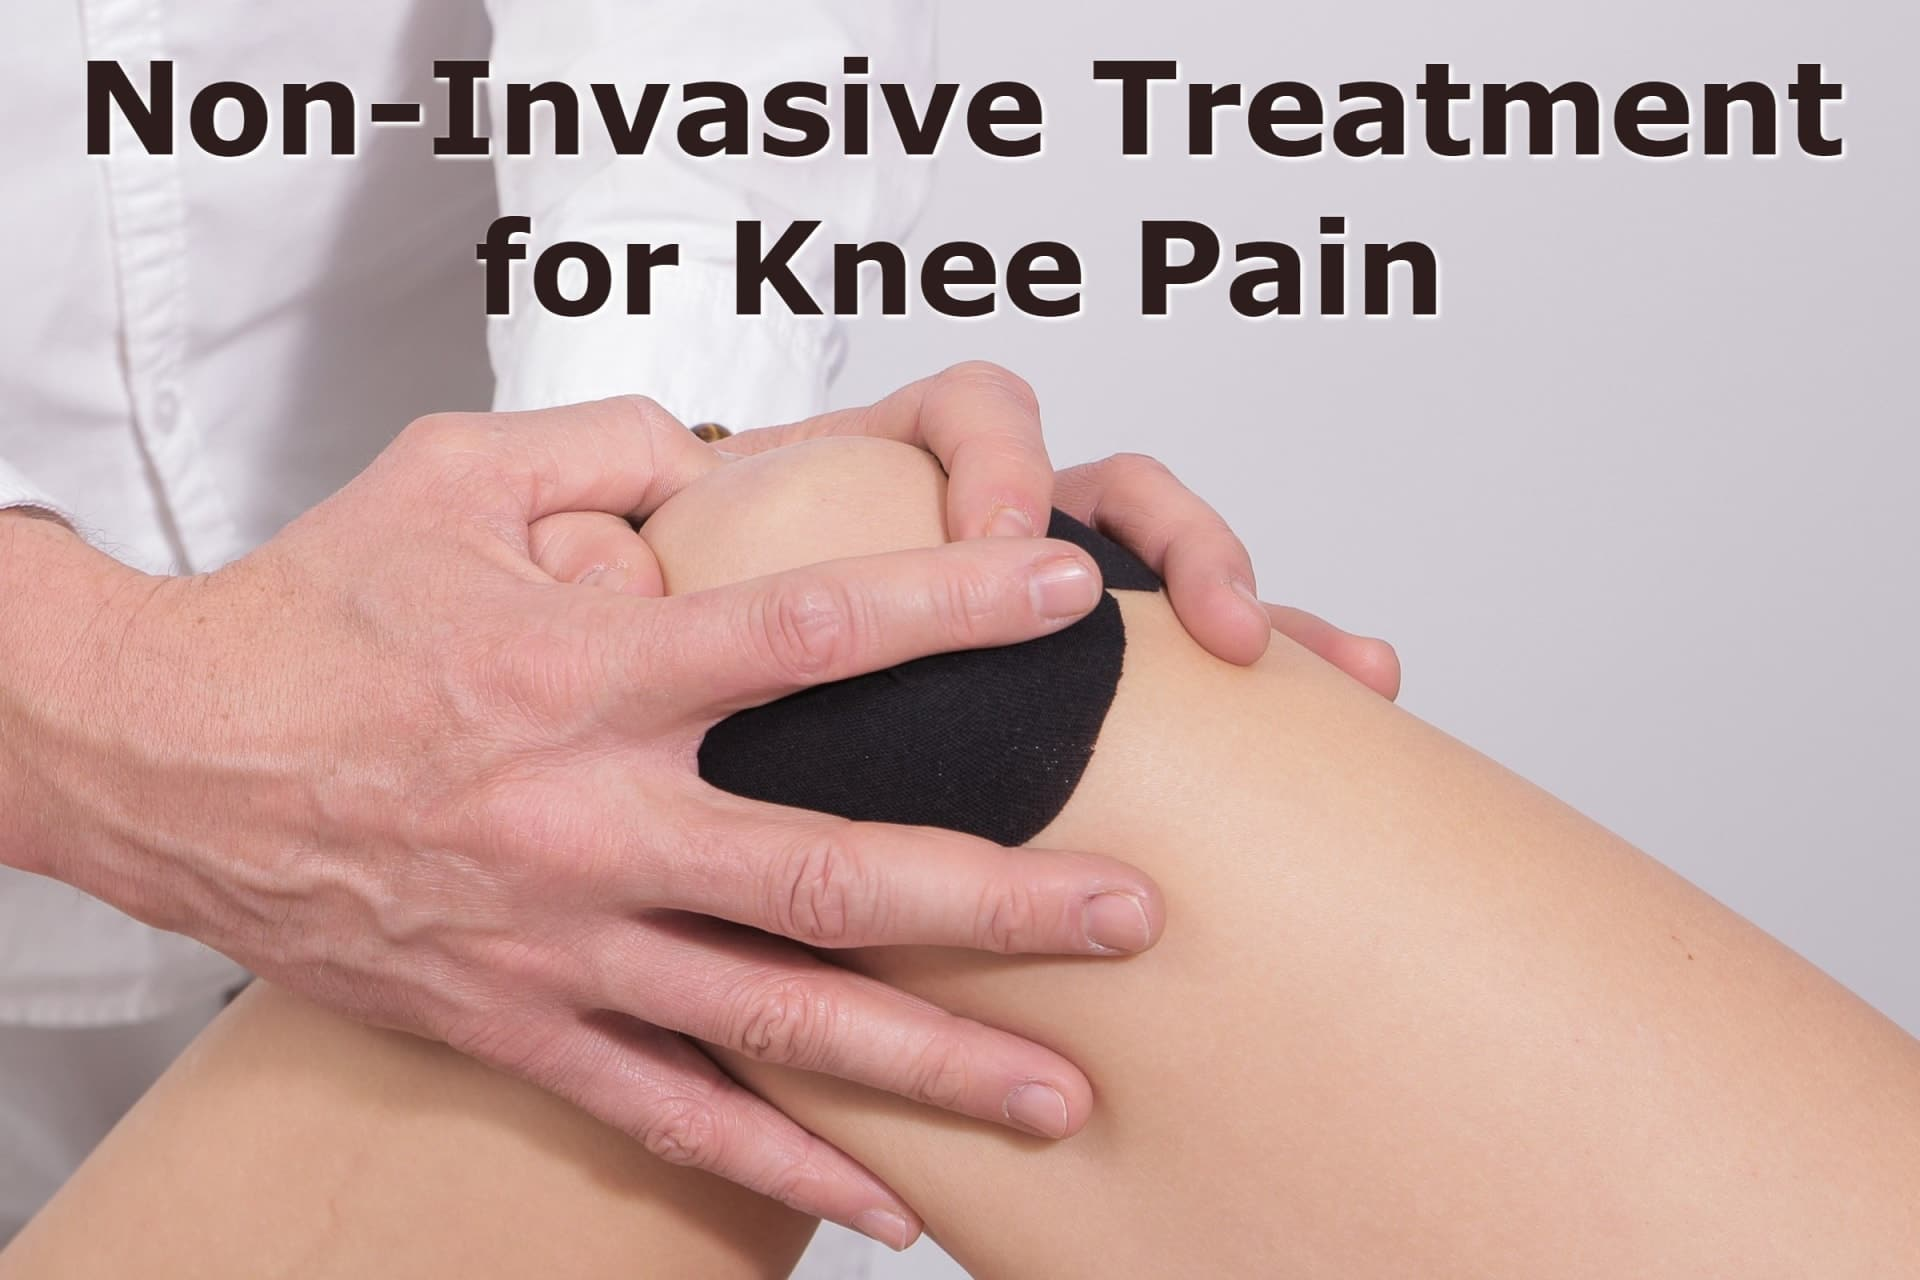 Chiropractic Treatments for Knee Pain Relief